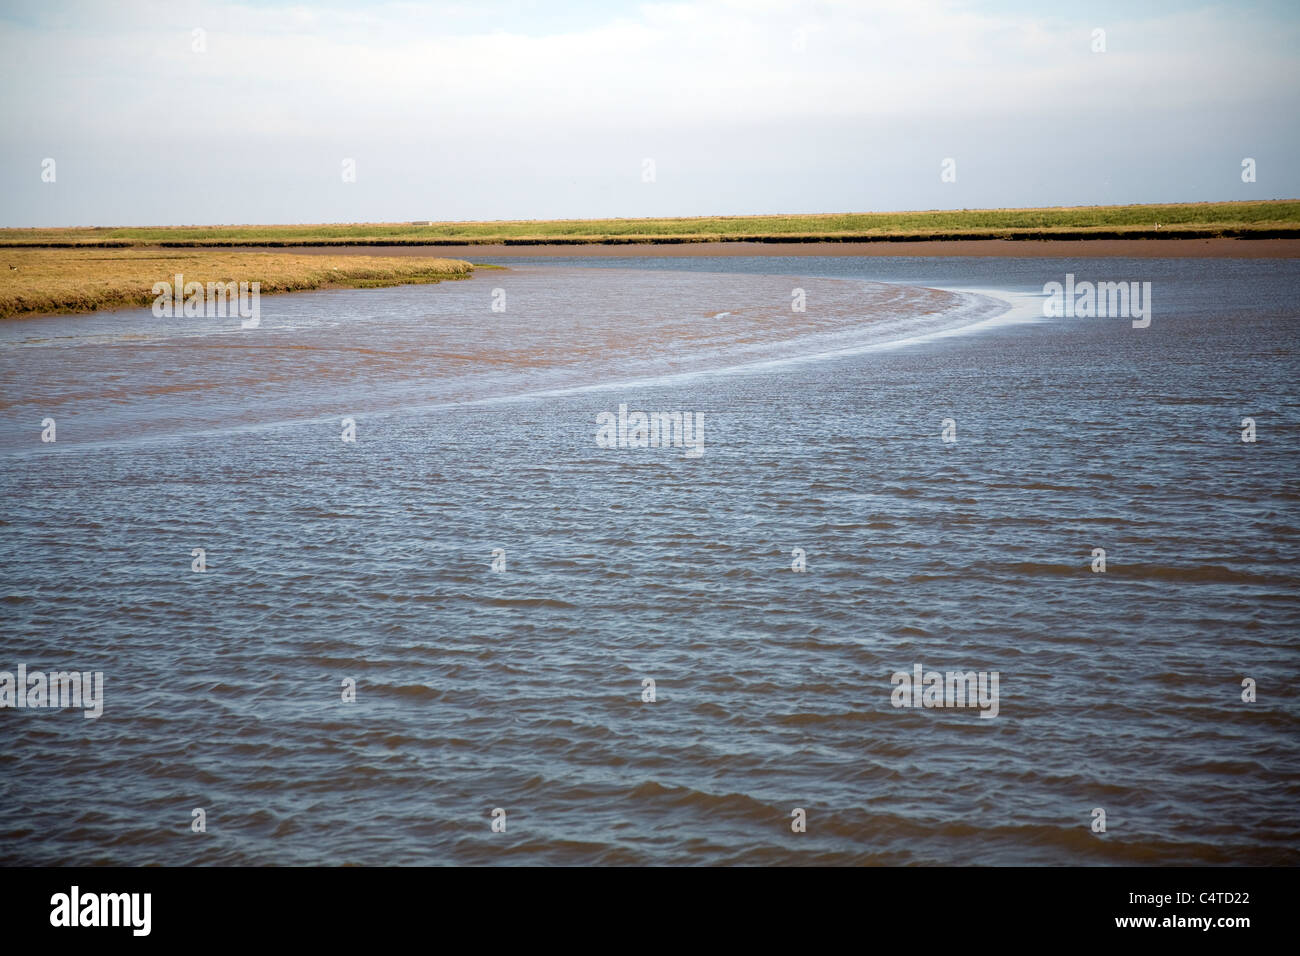 Butley River creek with muddy river bed, Boyton, Suffolk, England Stock Photo